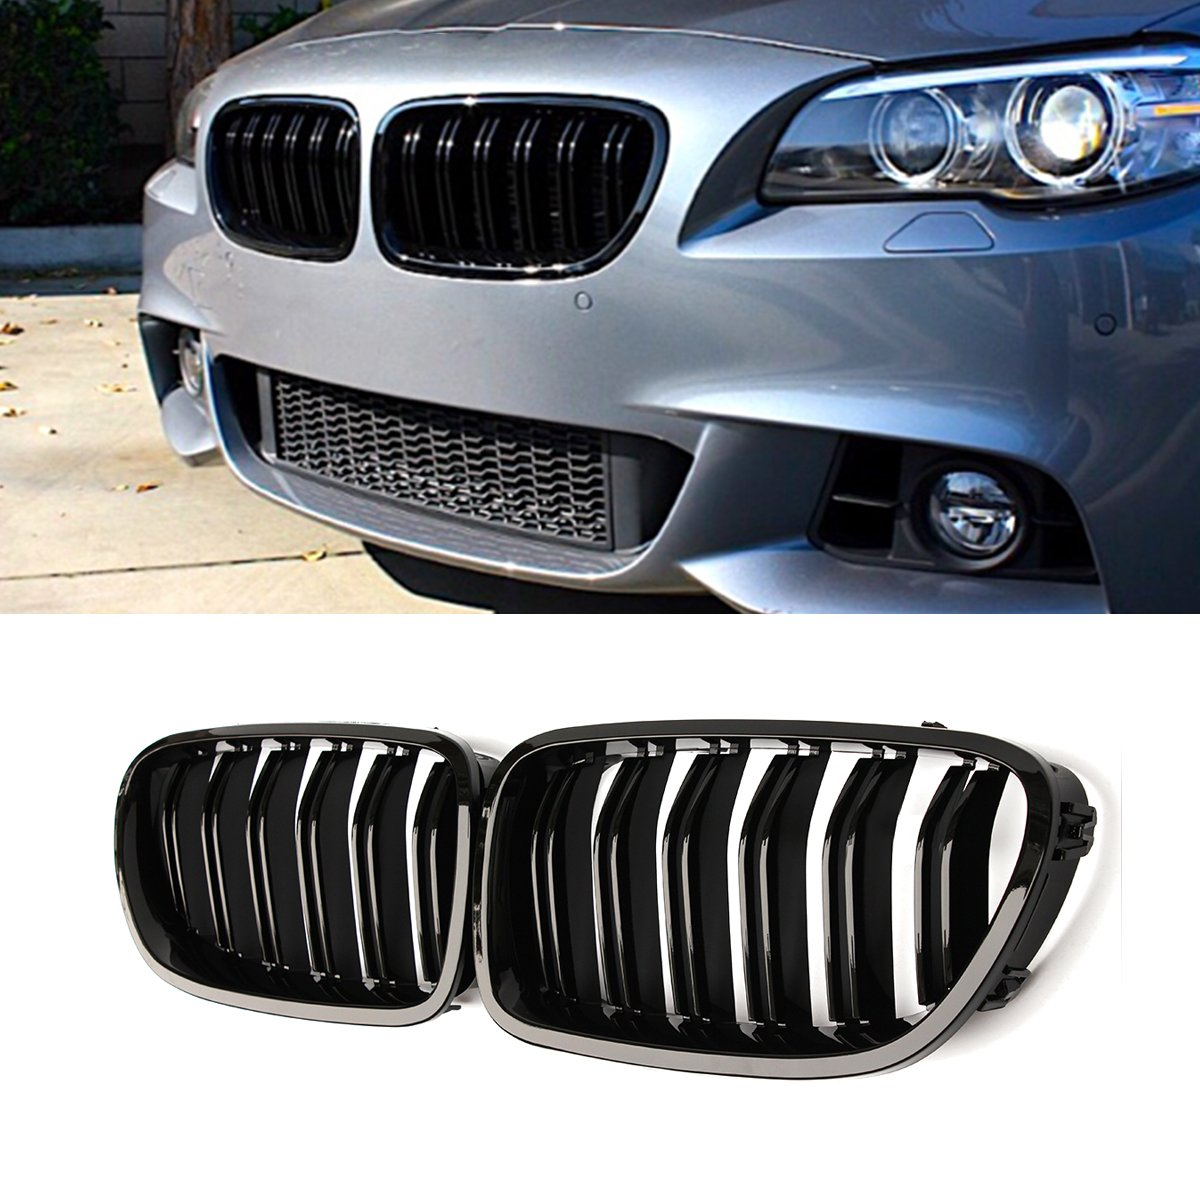 F10 Grille, Carbon Fiber Front Replacement Kidney Grill for BMW 5 Series F10 Gloss Black Qitian